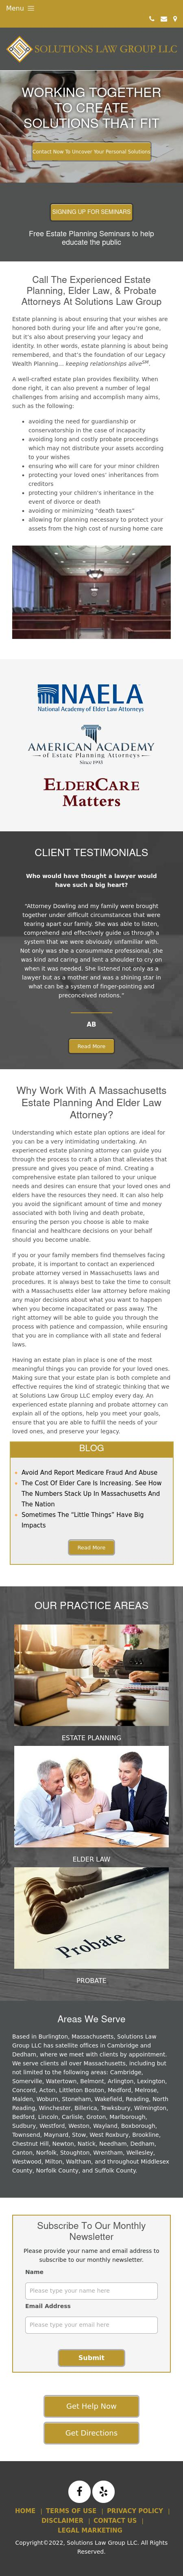 Solutions Law Group LLC - Cambridge MA Lawyers